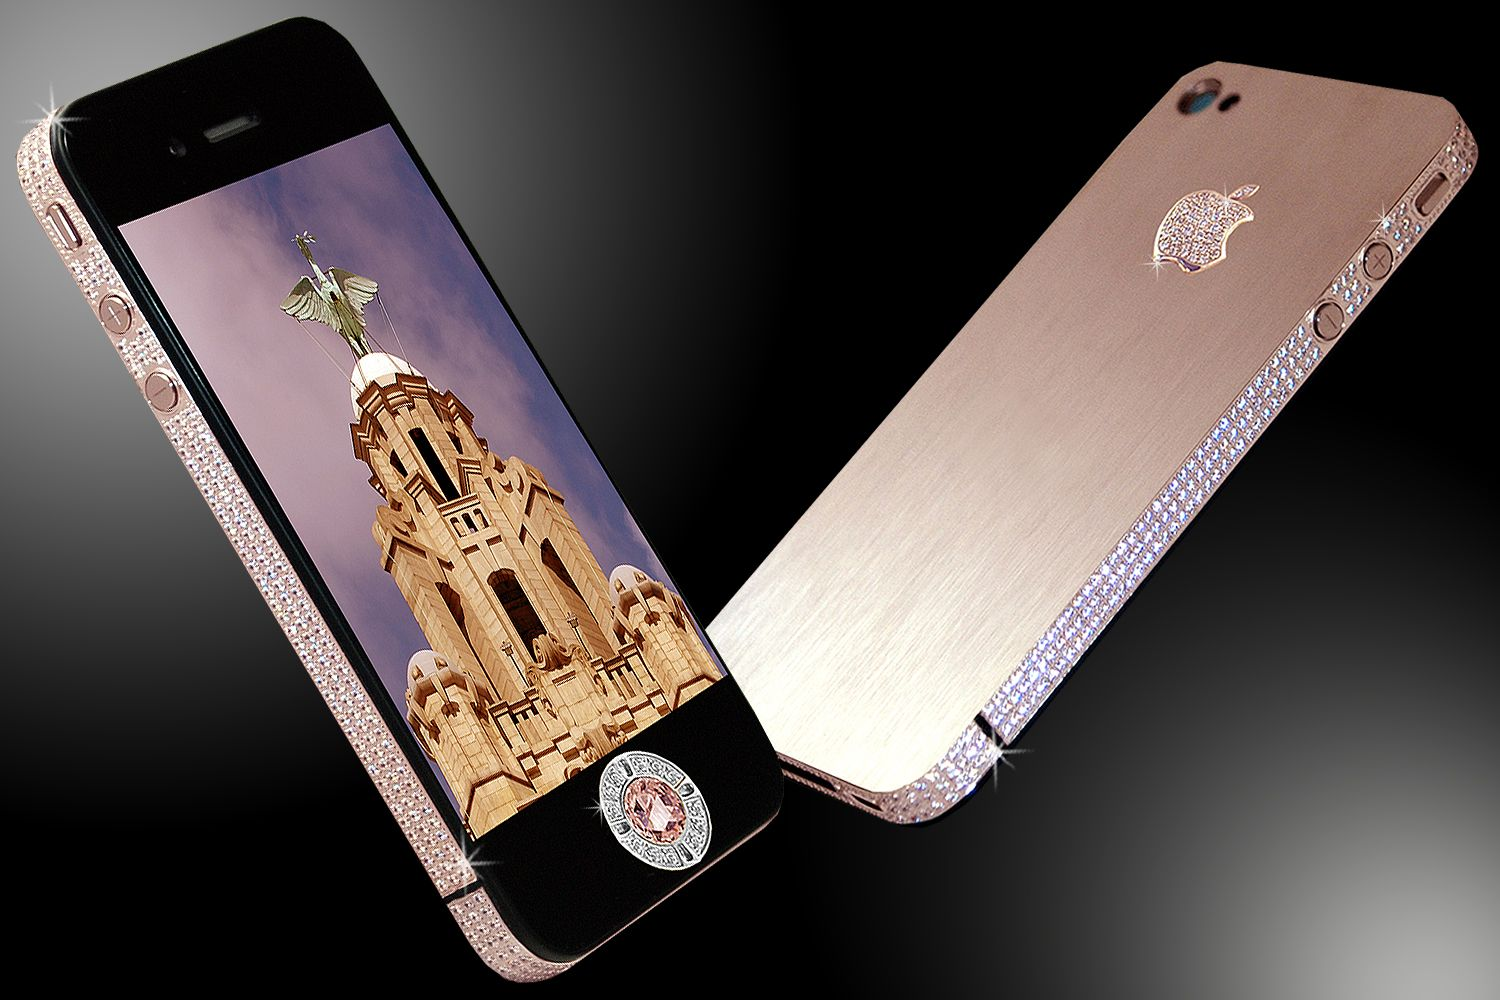 Top 10 Most Expensive Things On Earth With Images Iphone Cost